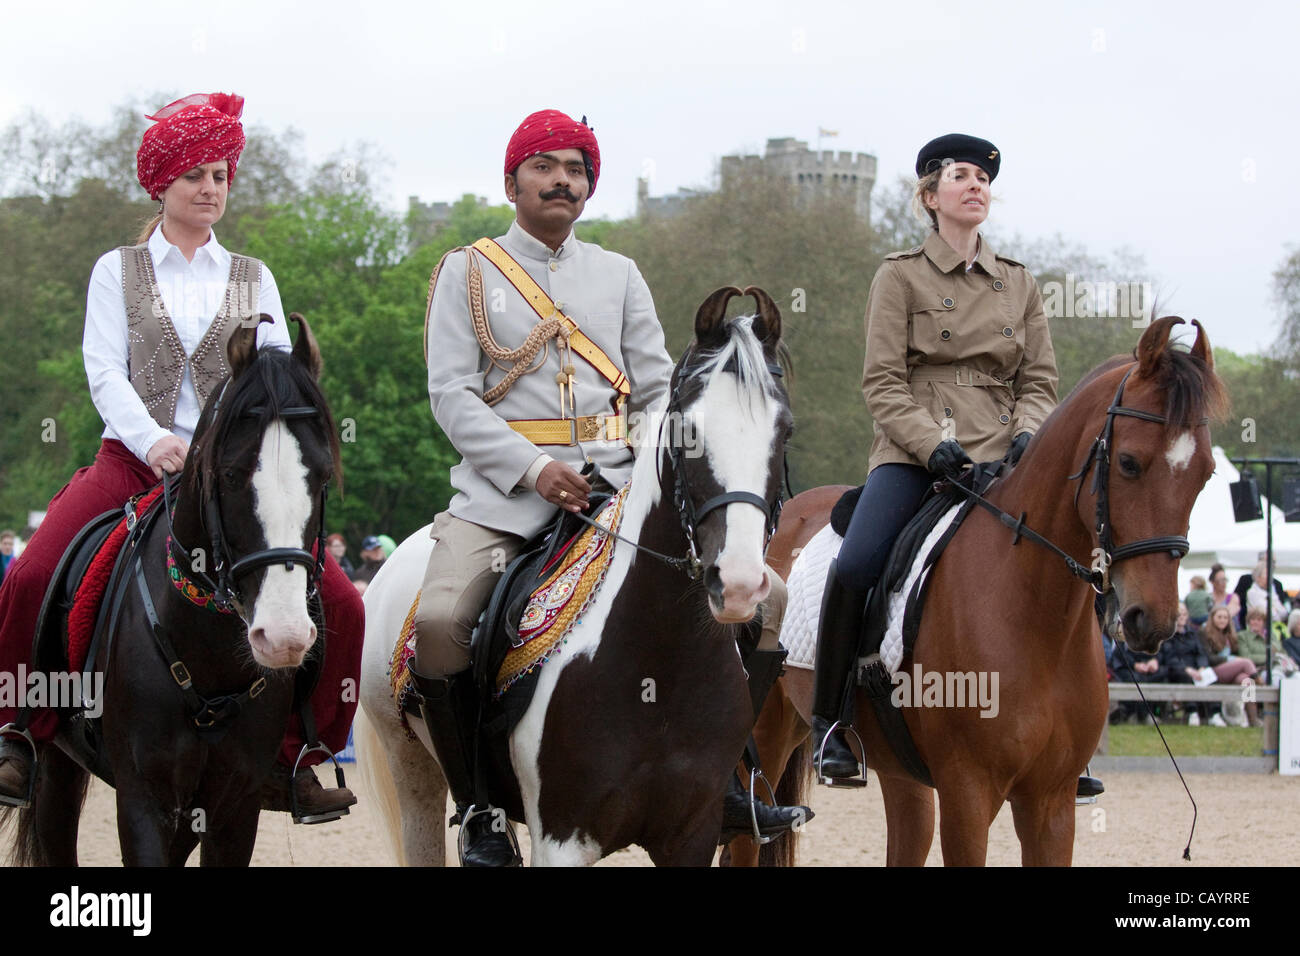 Thursday 10th May 2012 Marwari Horses From India Being Dispalyed At Stock Photo Alamy